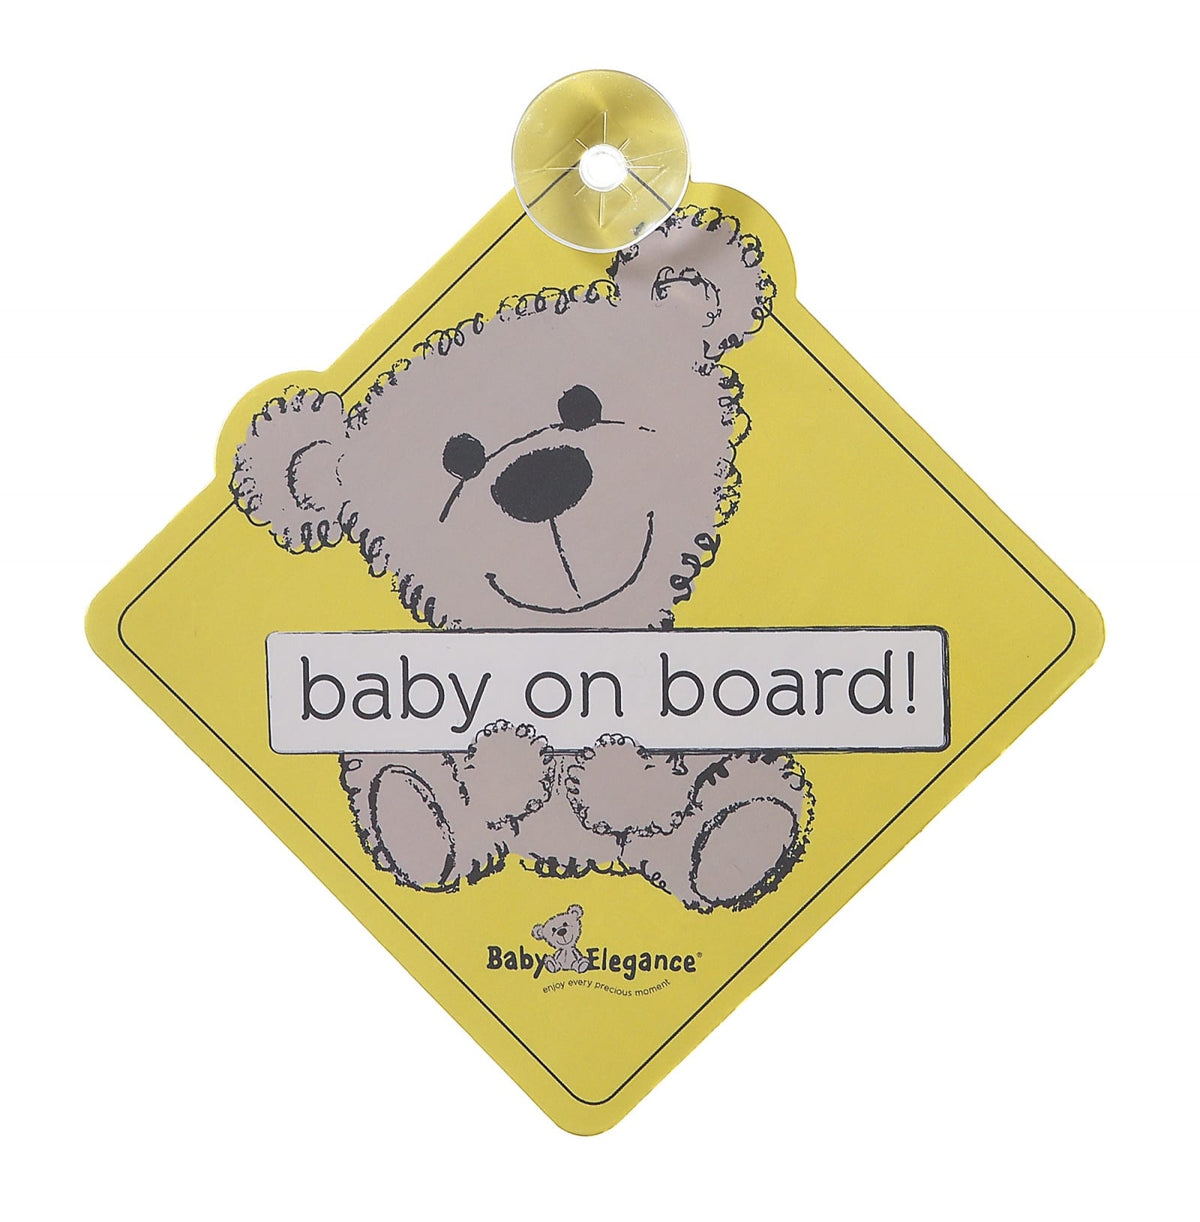 Baby Elegance Baby On Board Sign - Happy Baby